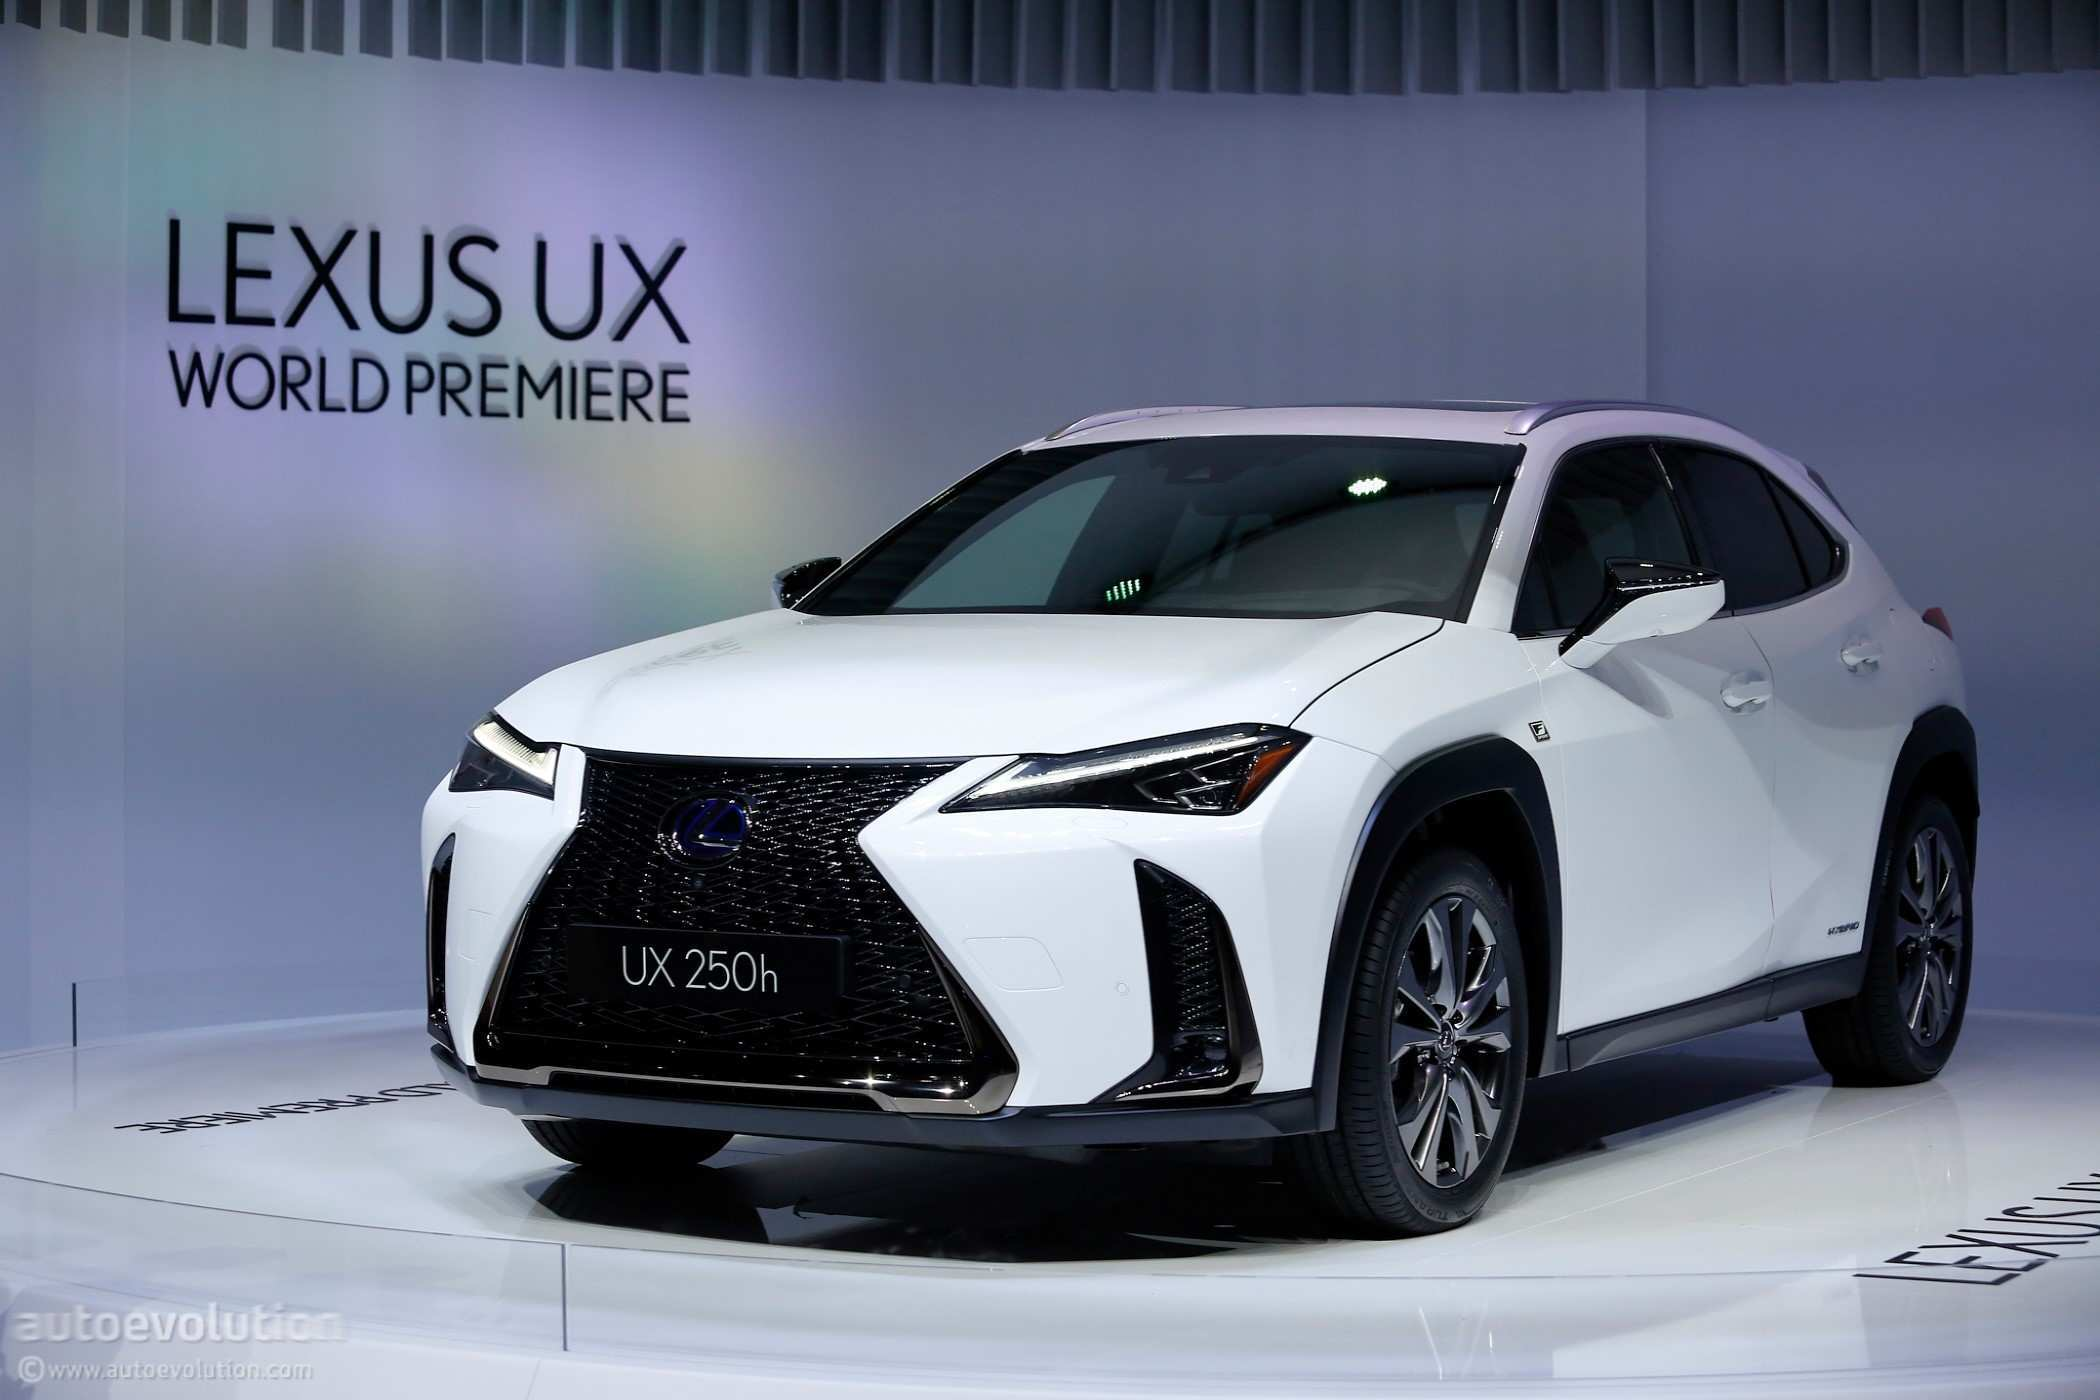 27 All New 2020 Lexus Ux 250H Specs and Review for 2020 Lexus Ux 250H